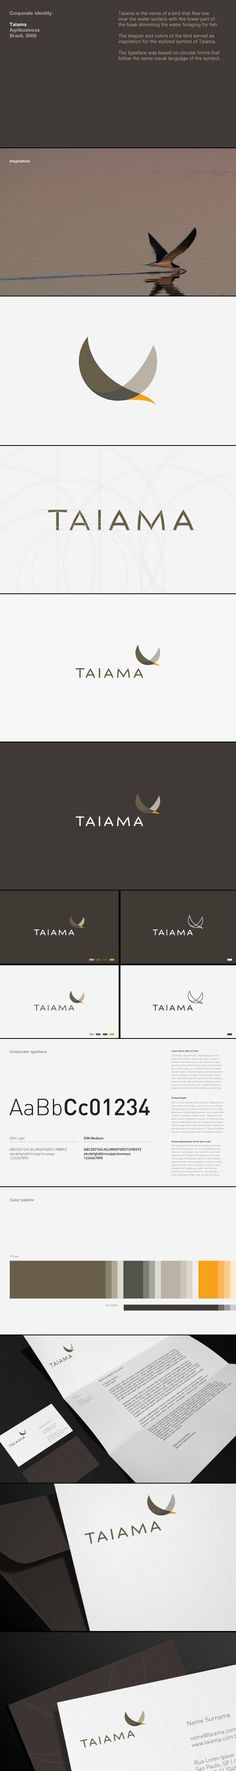 Taiama Logo Design by Roger Oddone of SF, CA. Elegance in ornithology for this agribusiness client in Brazil.